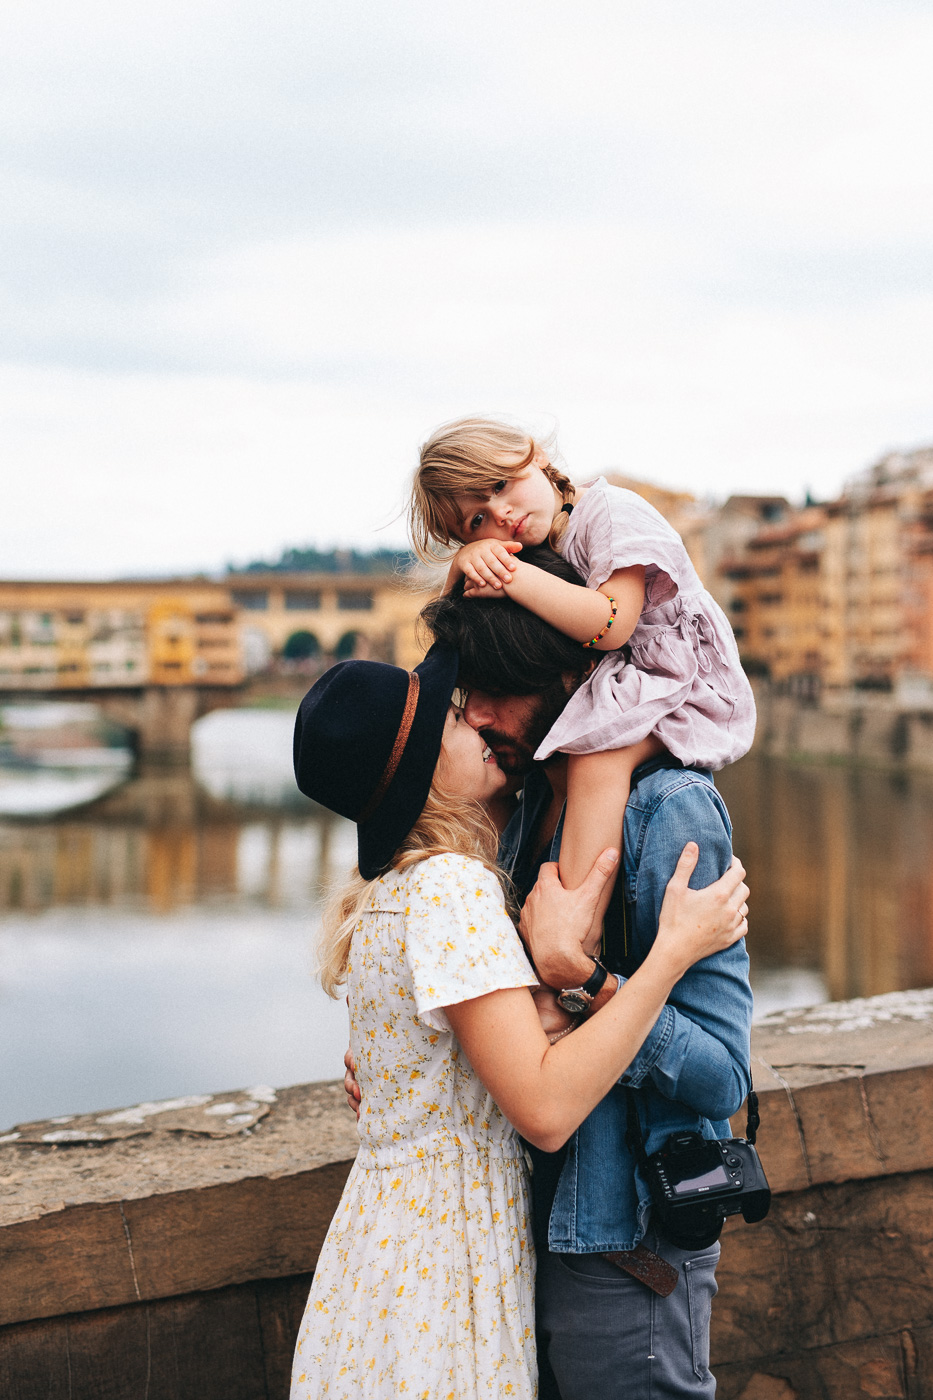 Family Photoshoot in Florence, Italy, Ponte Vecchio old bridge